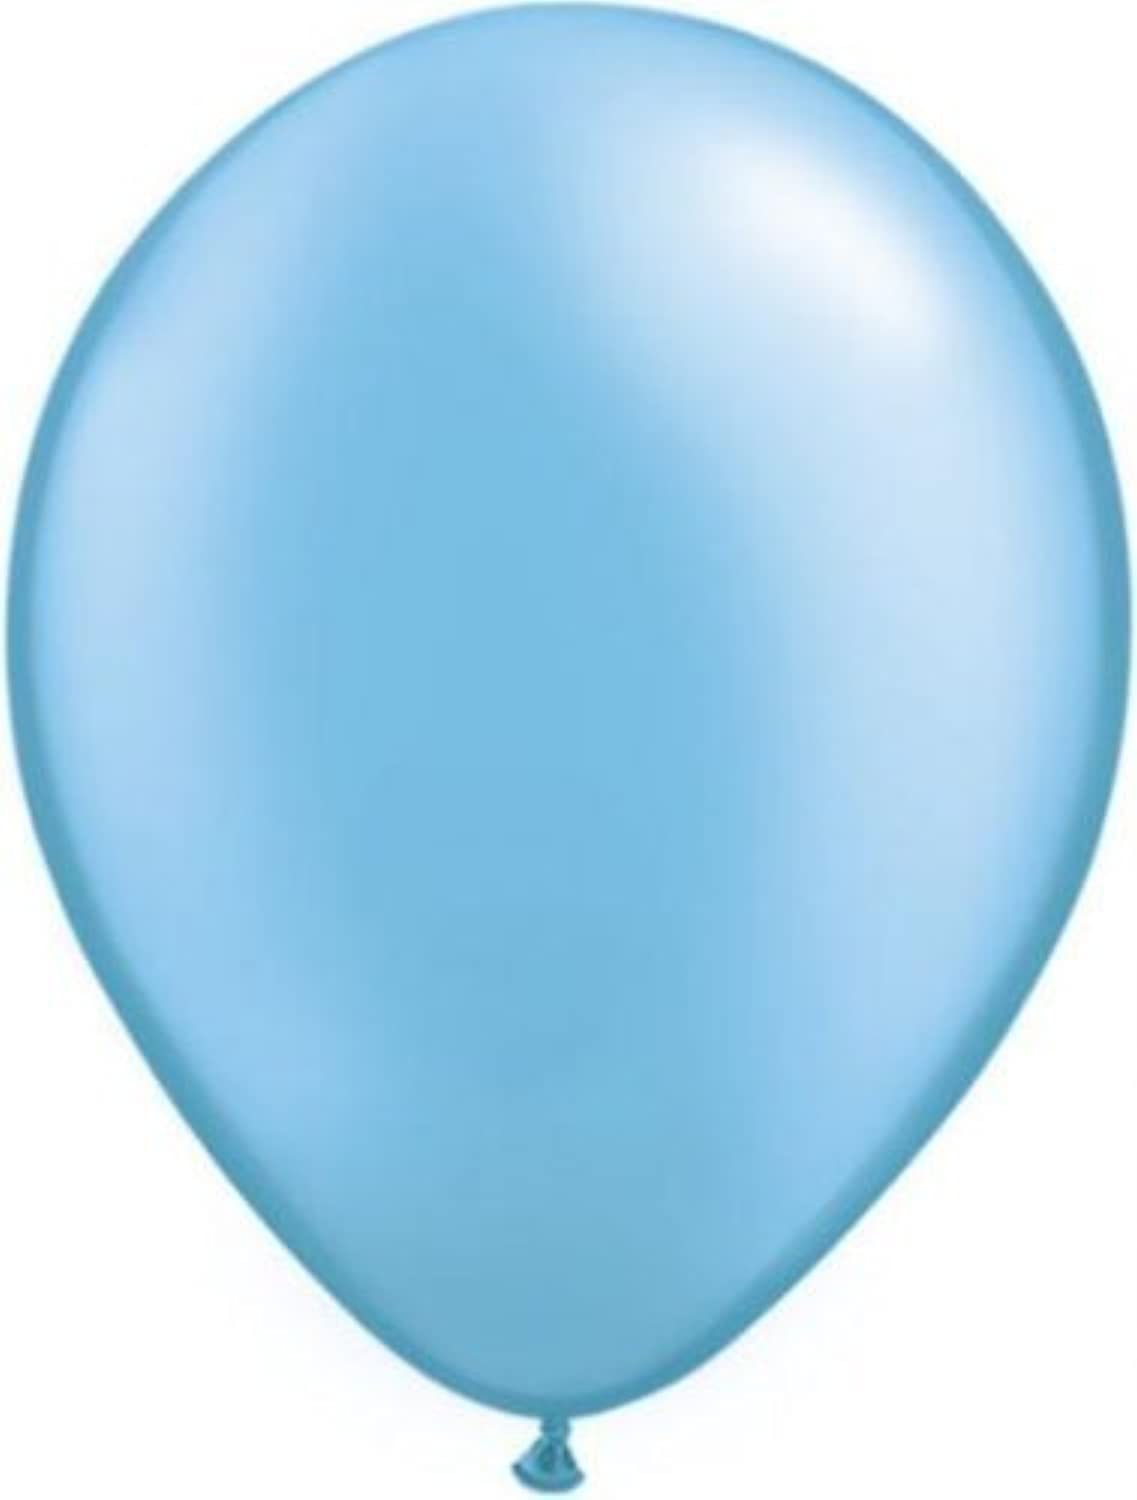 Pastel Pearl Colours Qualatex Balloons   11  Pearl Azure Balloon by Qualatex